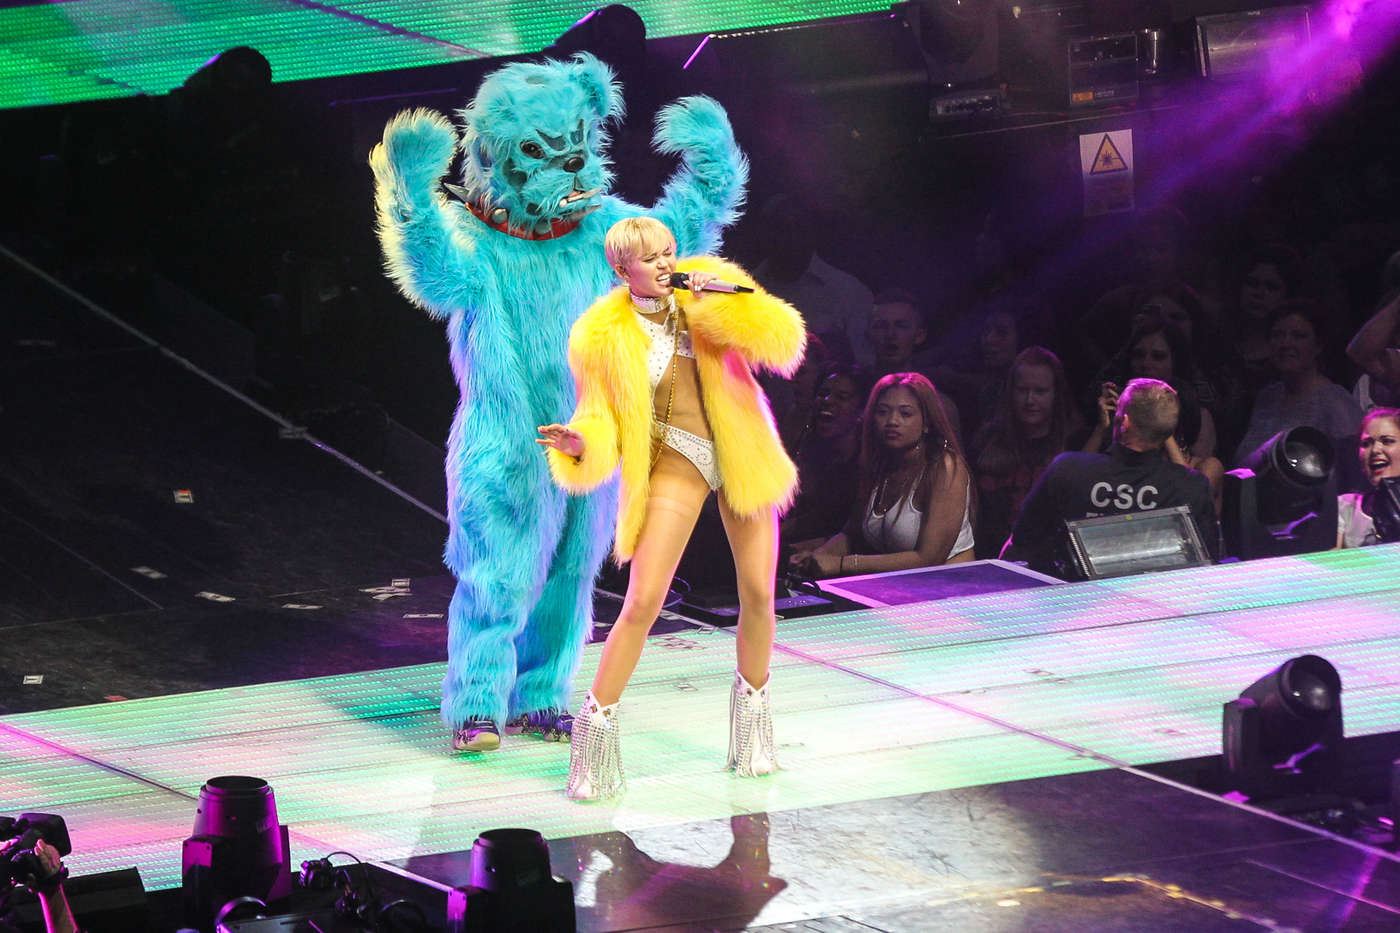 Miley Cyrus 2014 : Miley Cyrus: Bangerz Tour in Washington -70